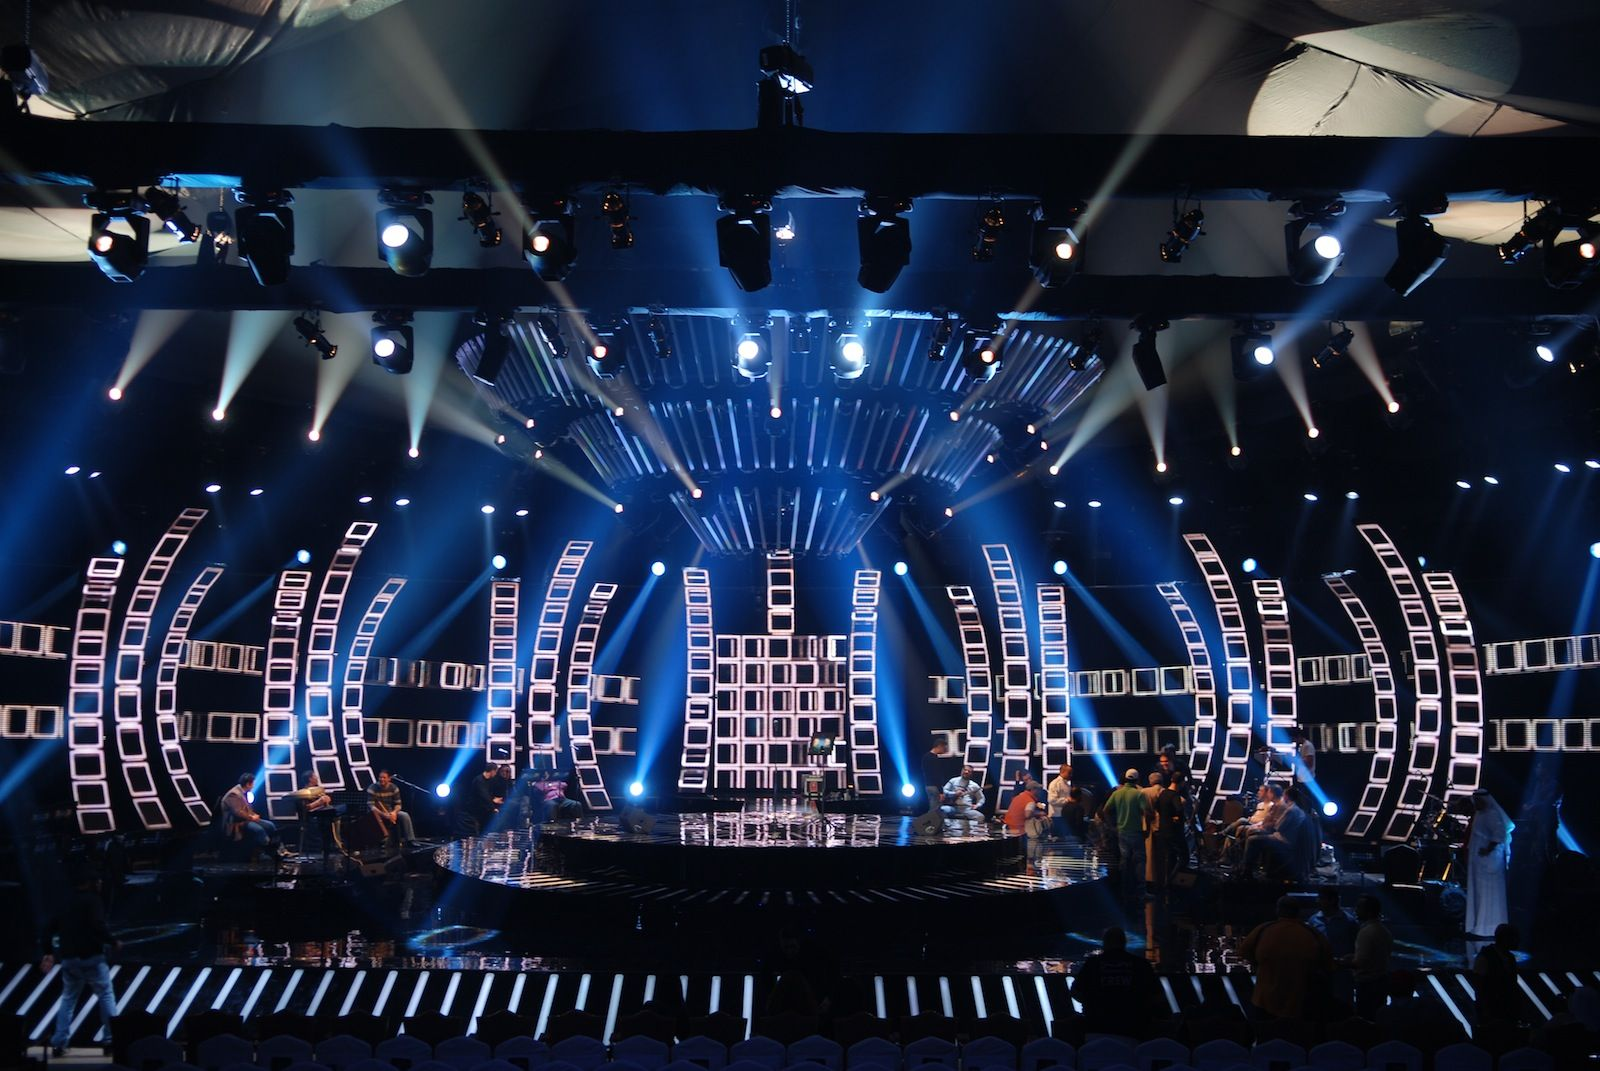 design inspiration - Concert Stage Design Ideas